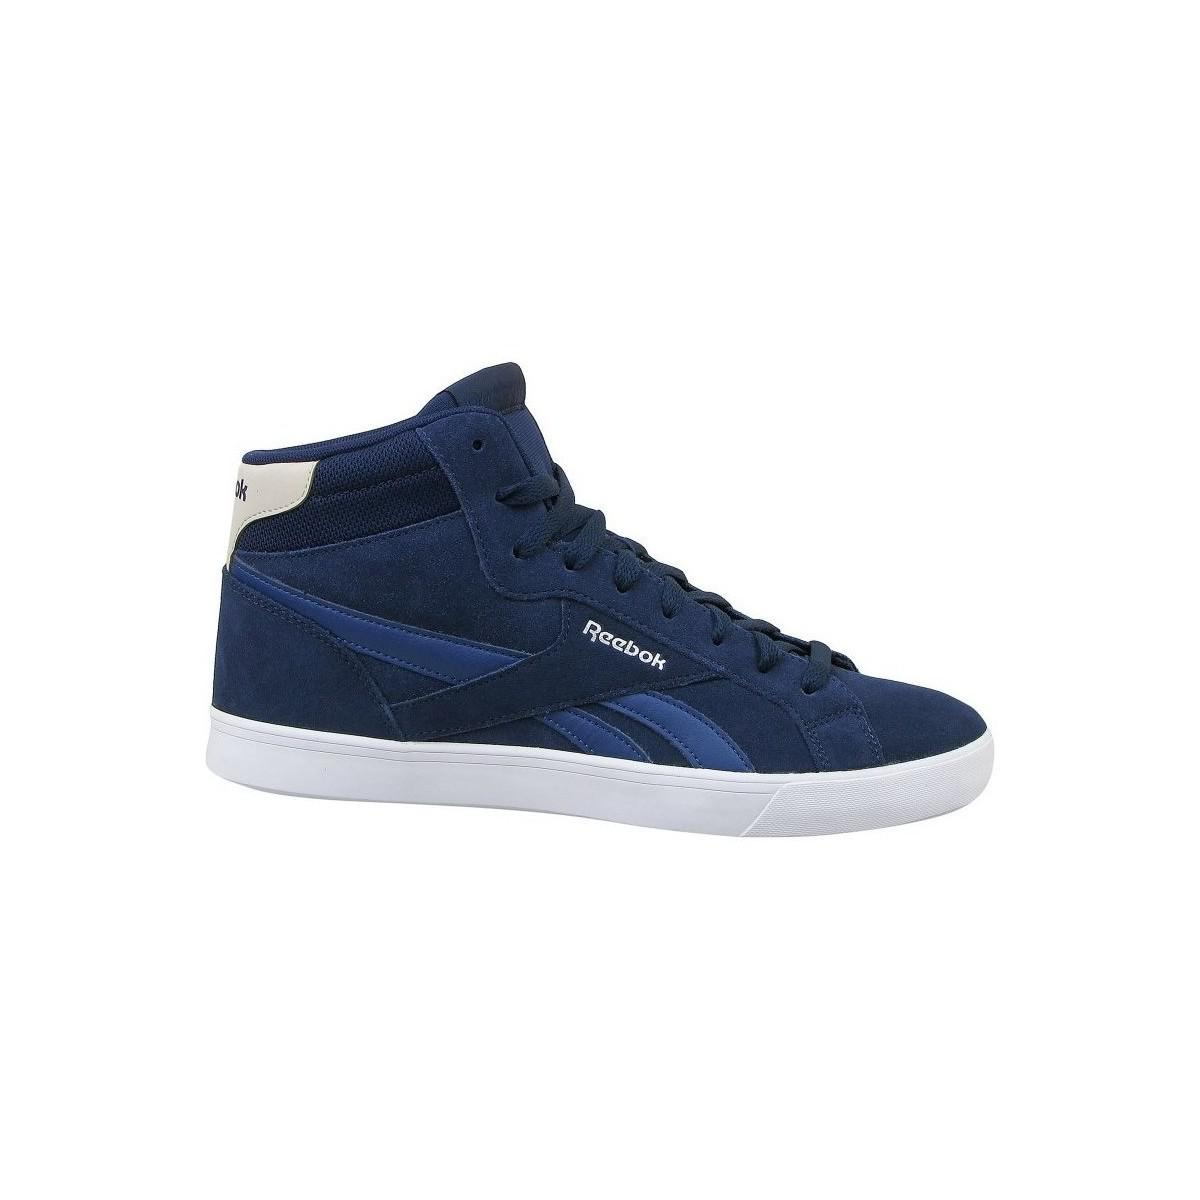 c086b3ab4412 Reebok Royal Complete 2ms Men s Shoes (high-top Trainers) In ...